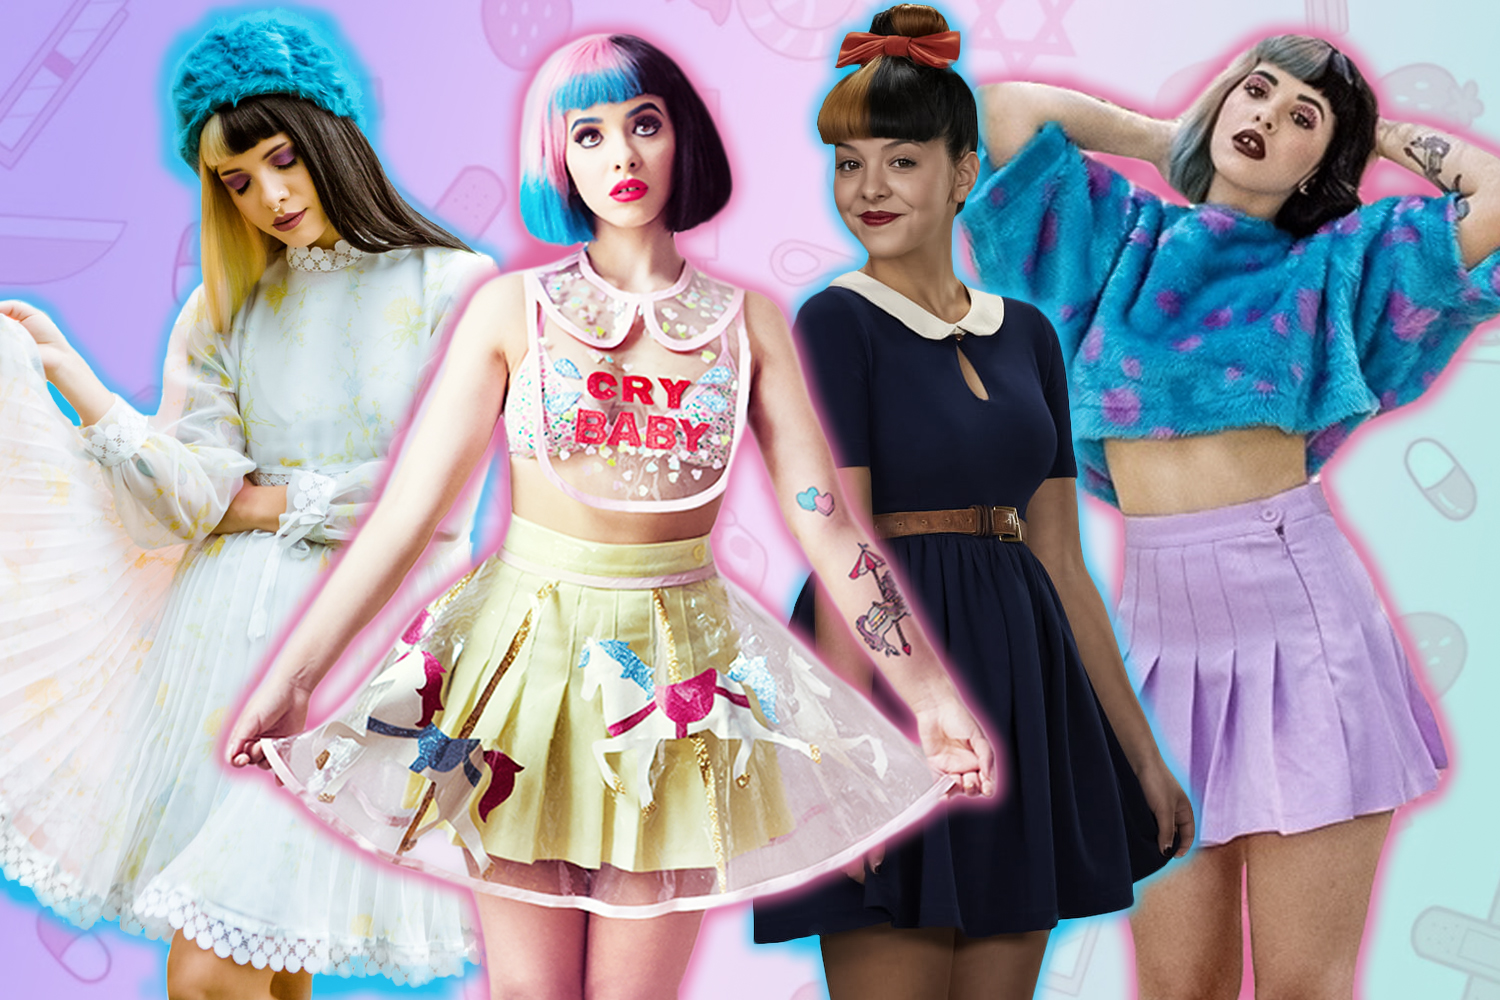 collage with melanie martinez outfits